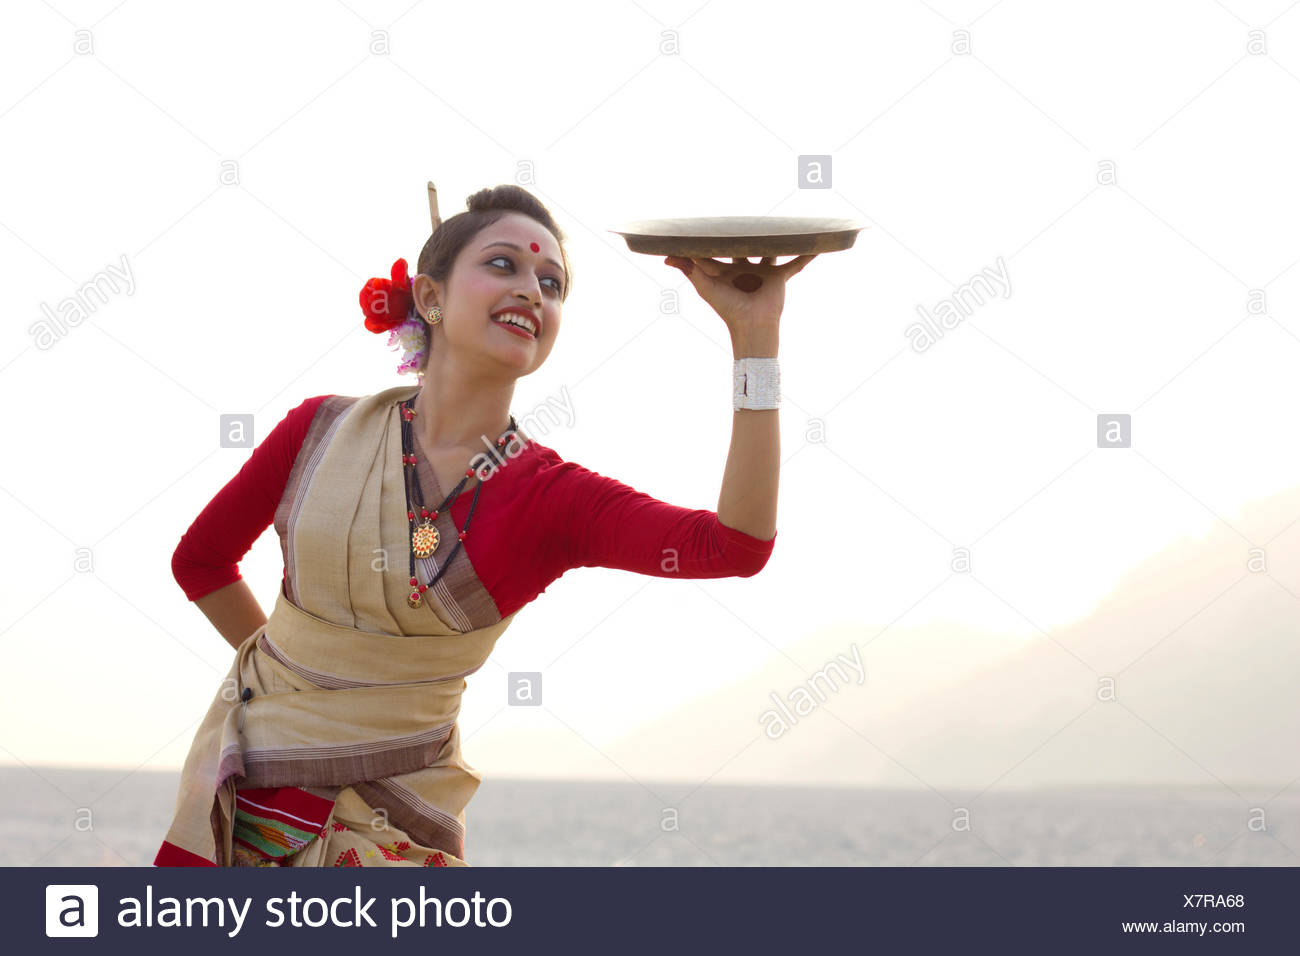 Bihu woman dancing with a brass plate - Stock Image